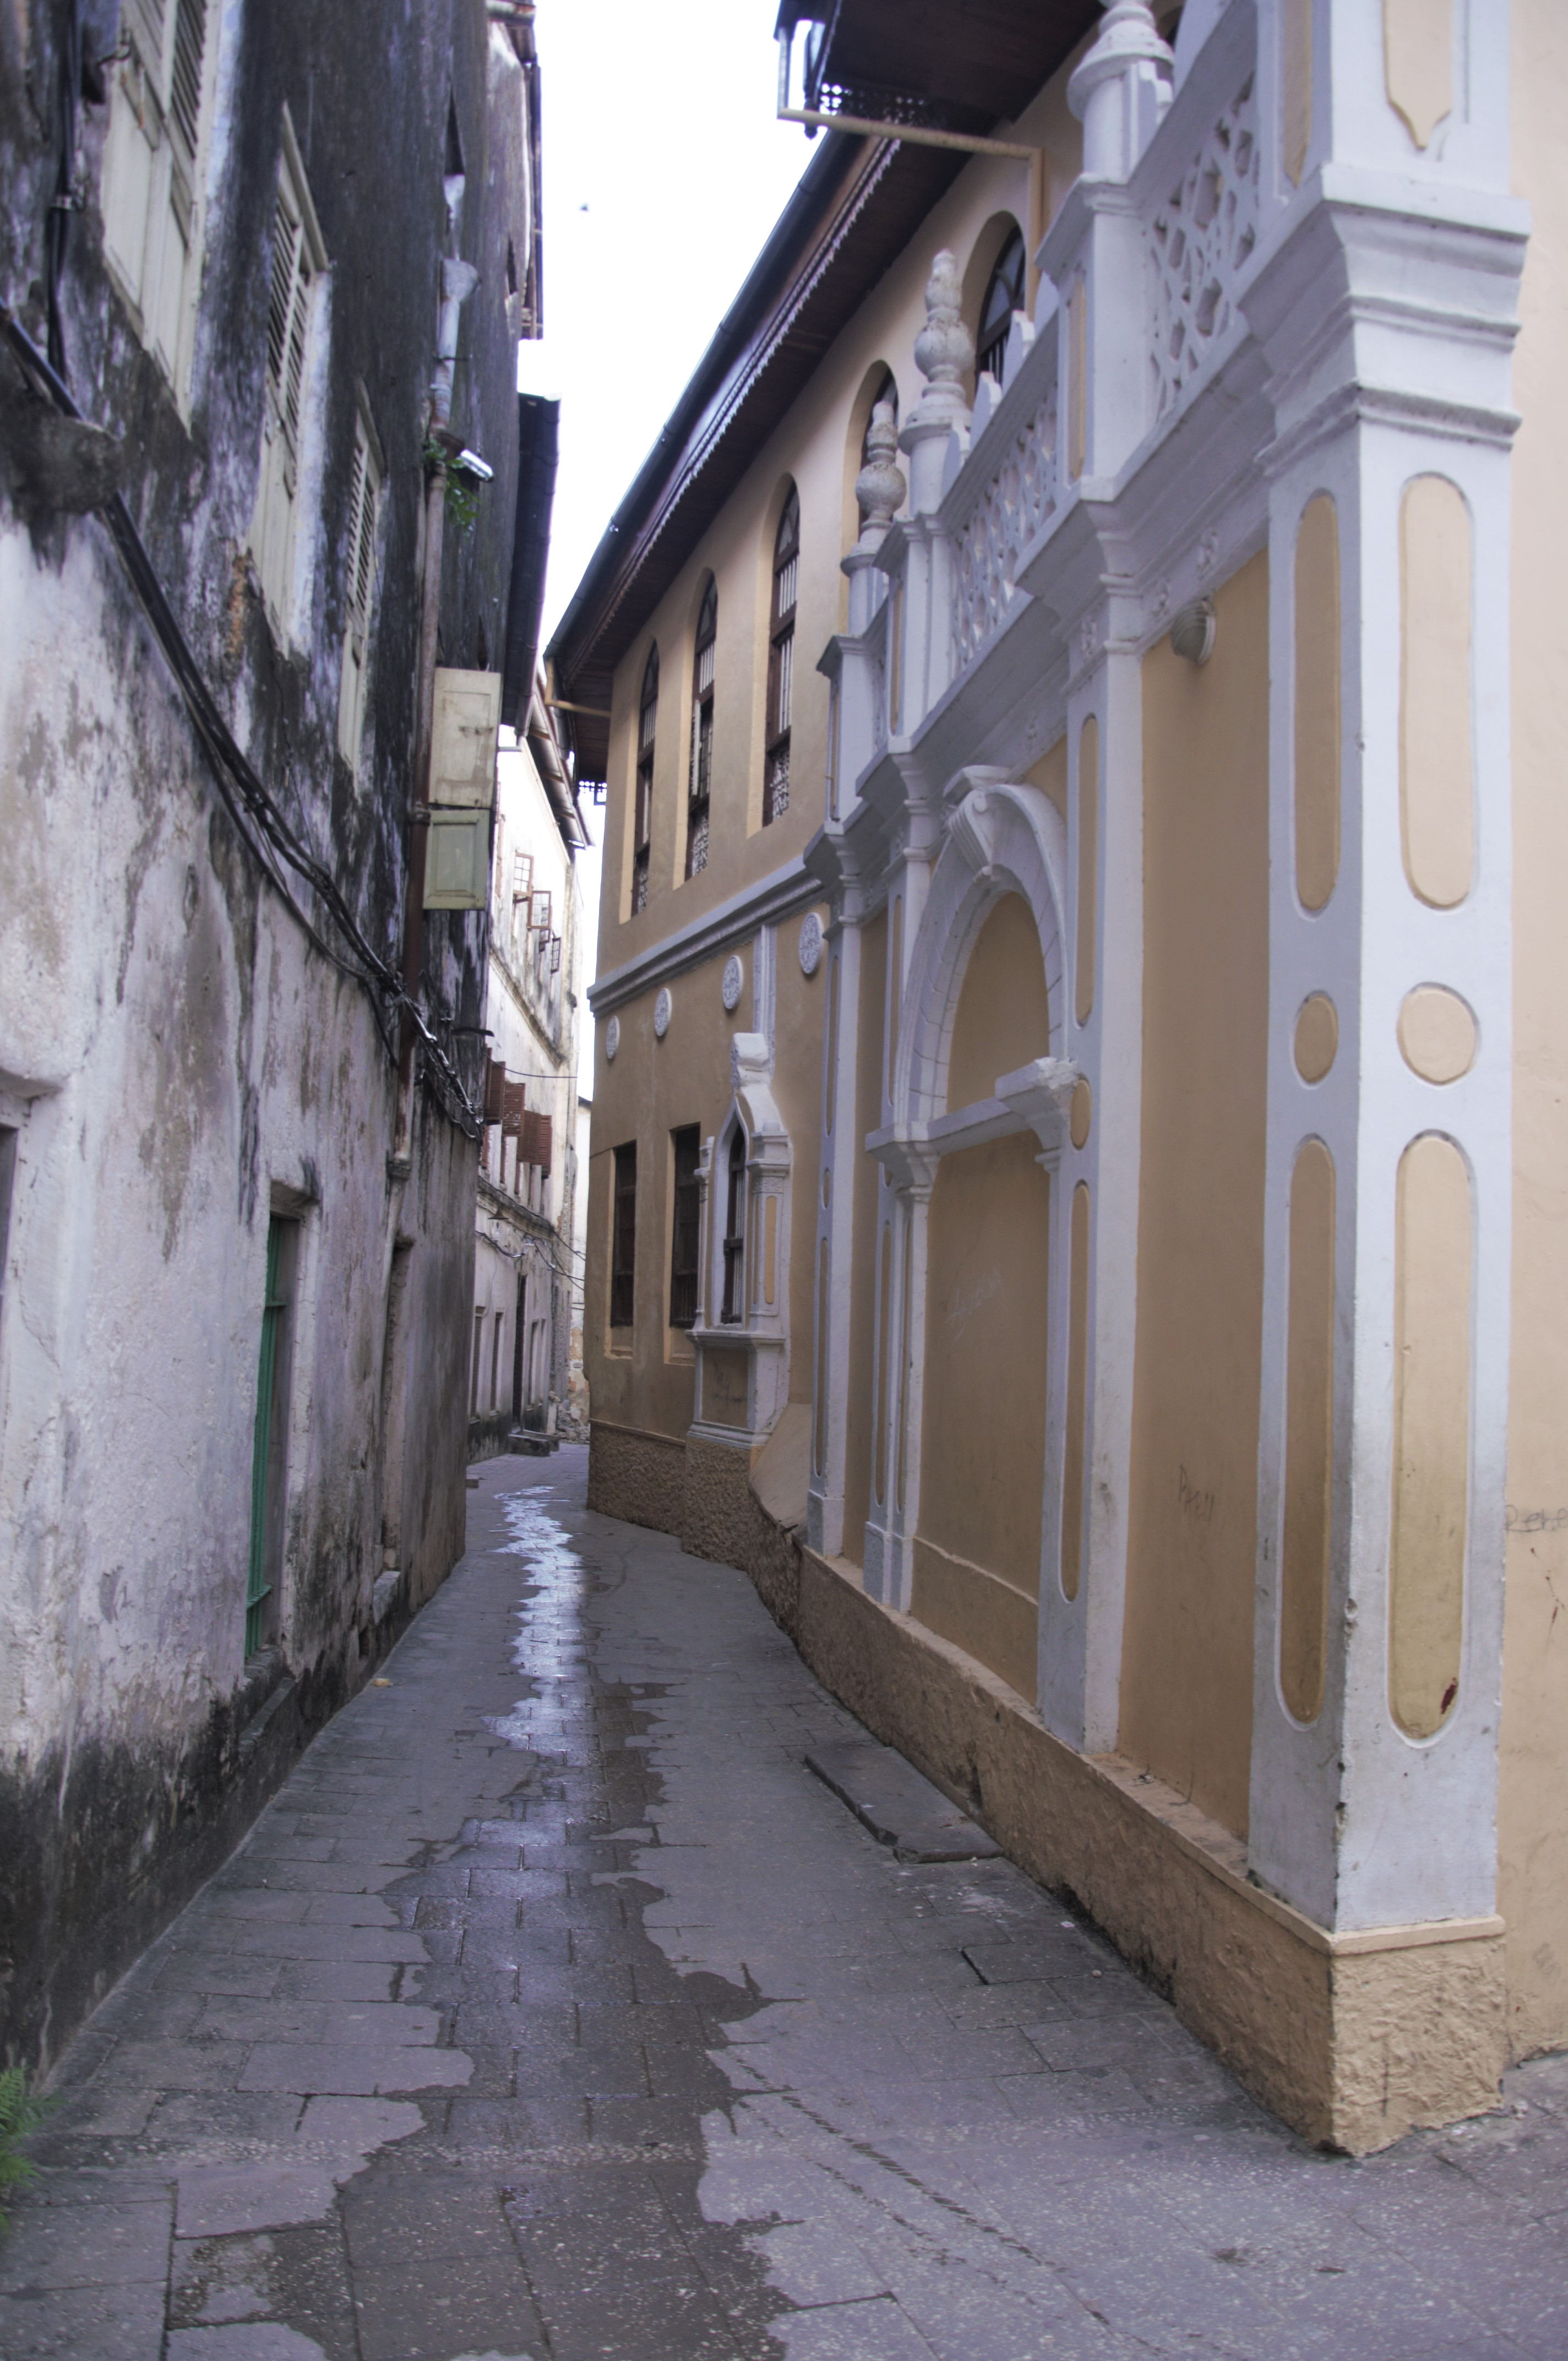 Narrow alley in Stone Town, Zanzibar. Photo taken on May 23, 2015.